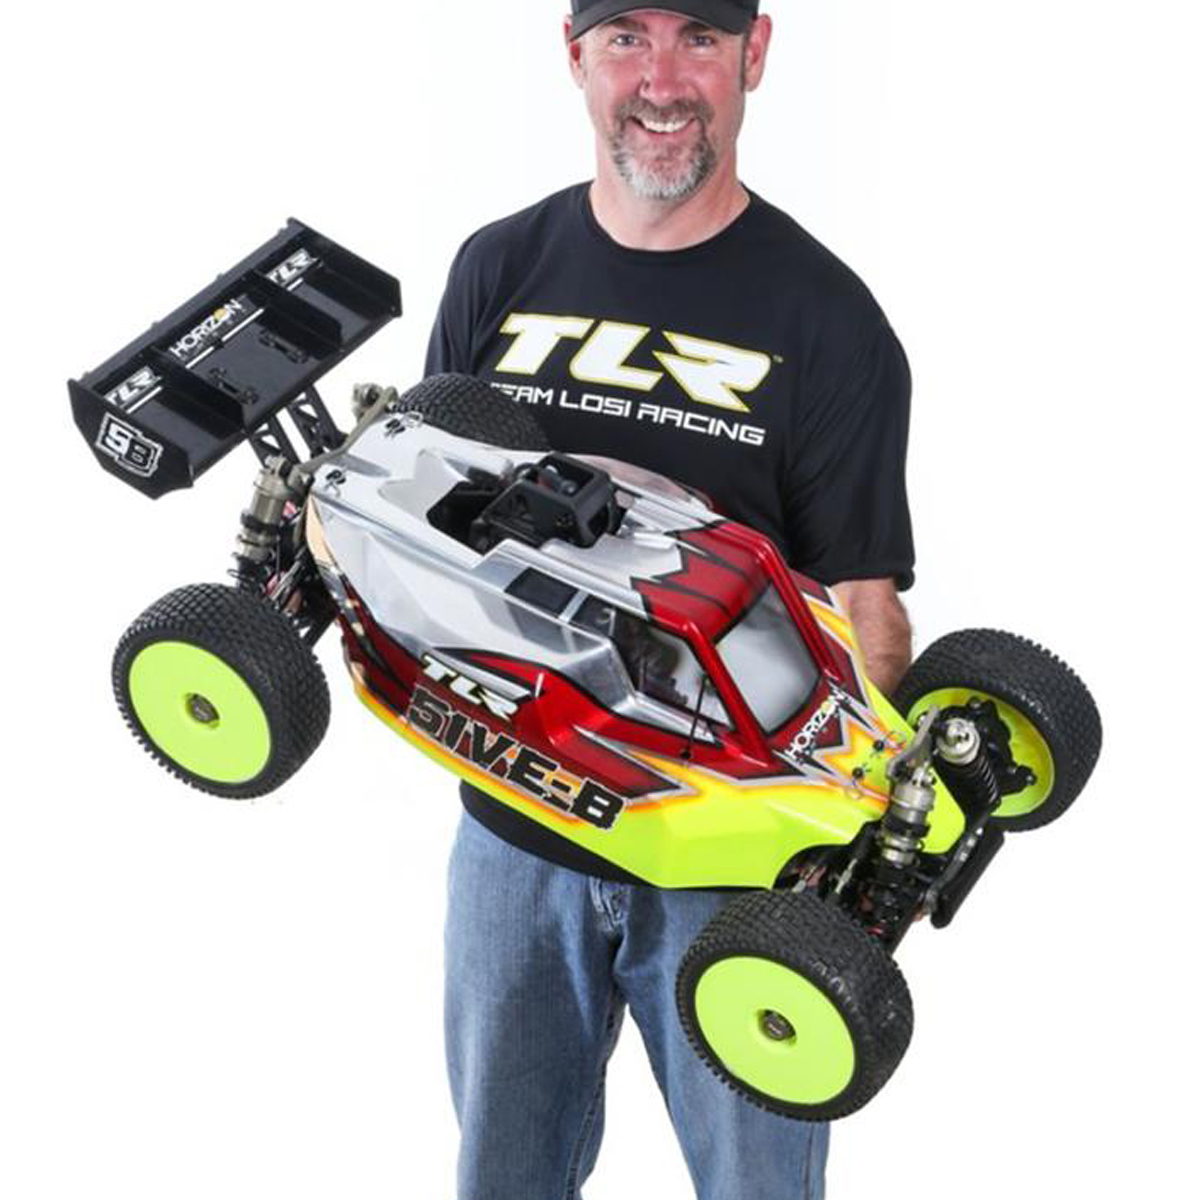 big gas burnin buggy tlr announces new 5ive b video